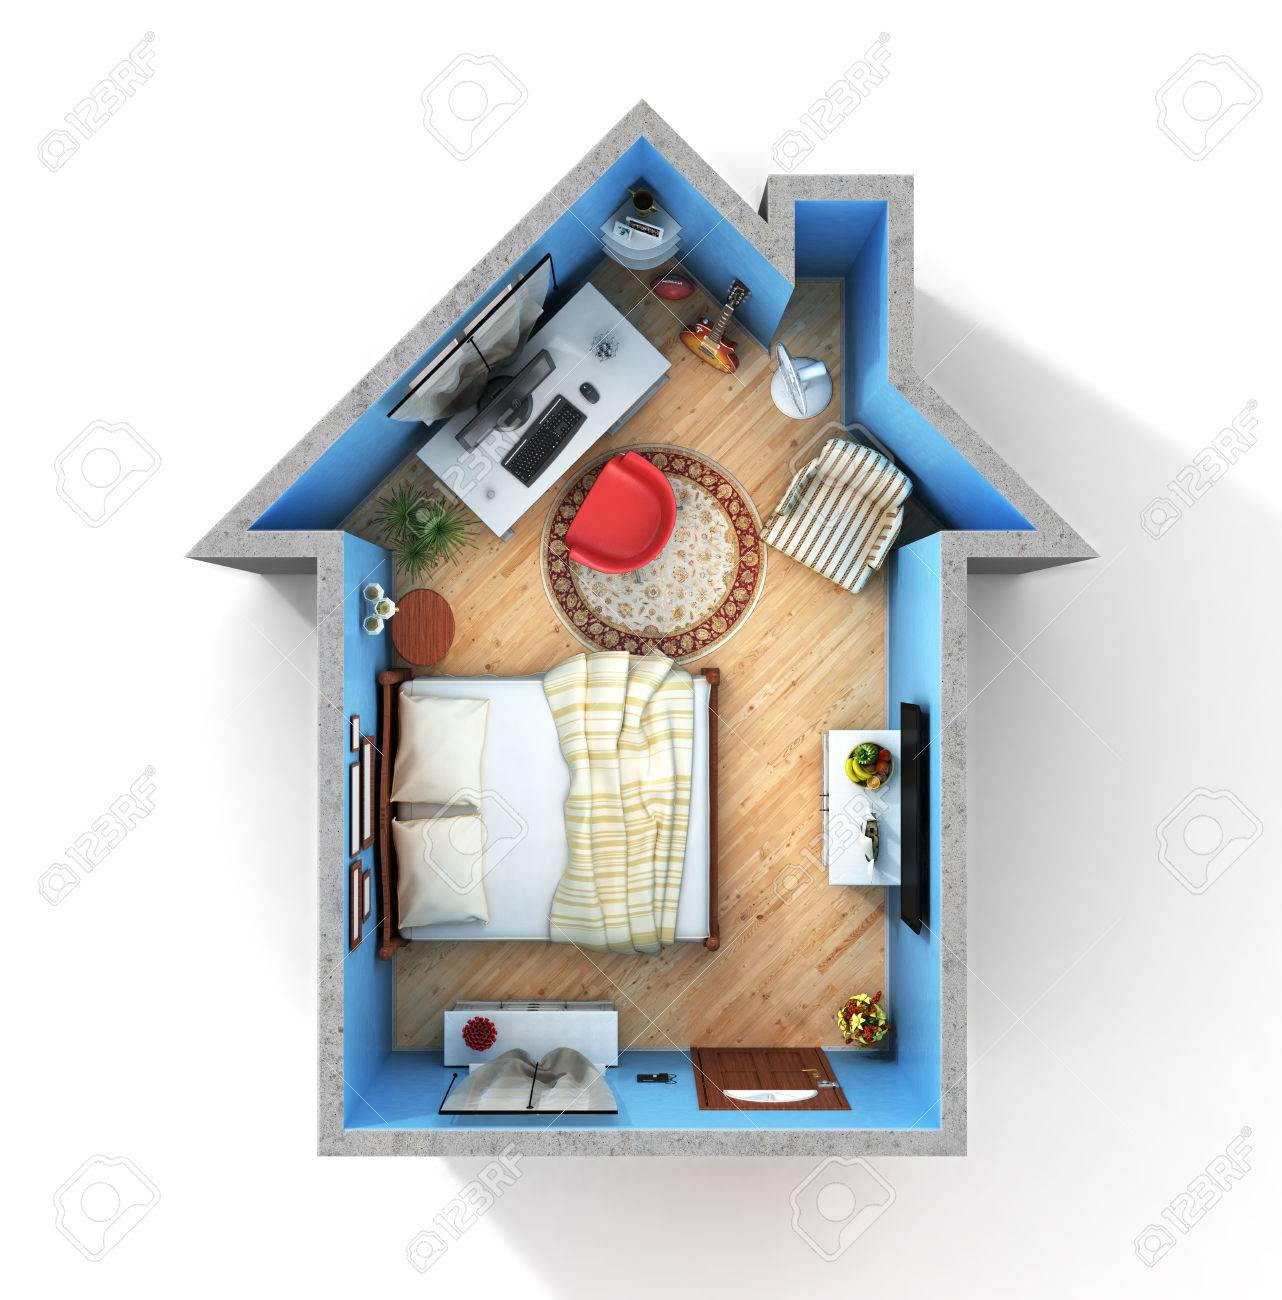 Flat Full Of Things In Form Of House In Top View.